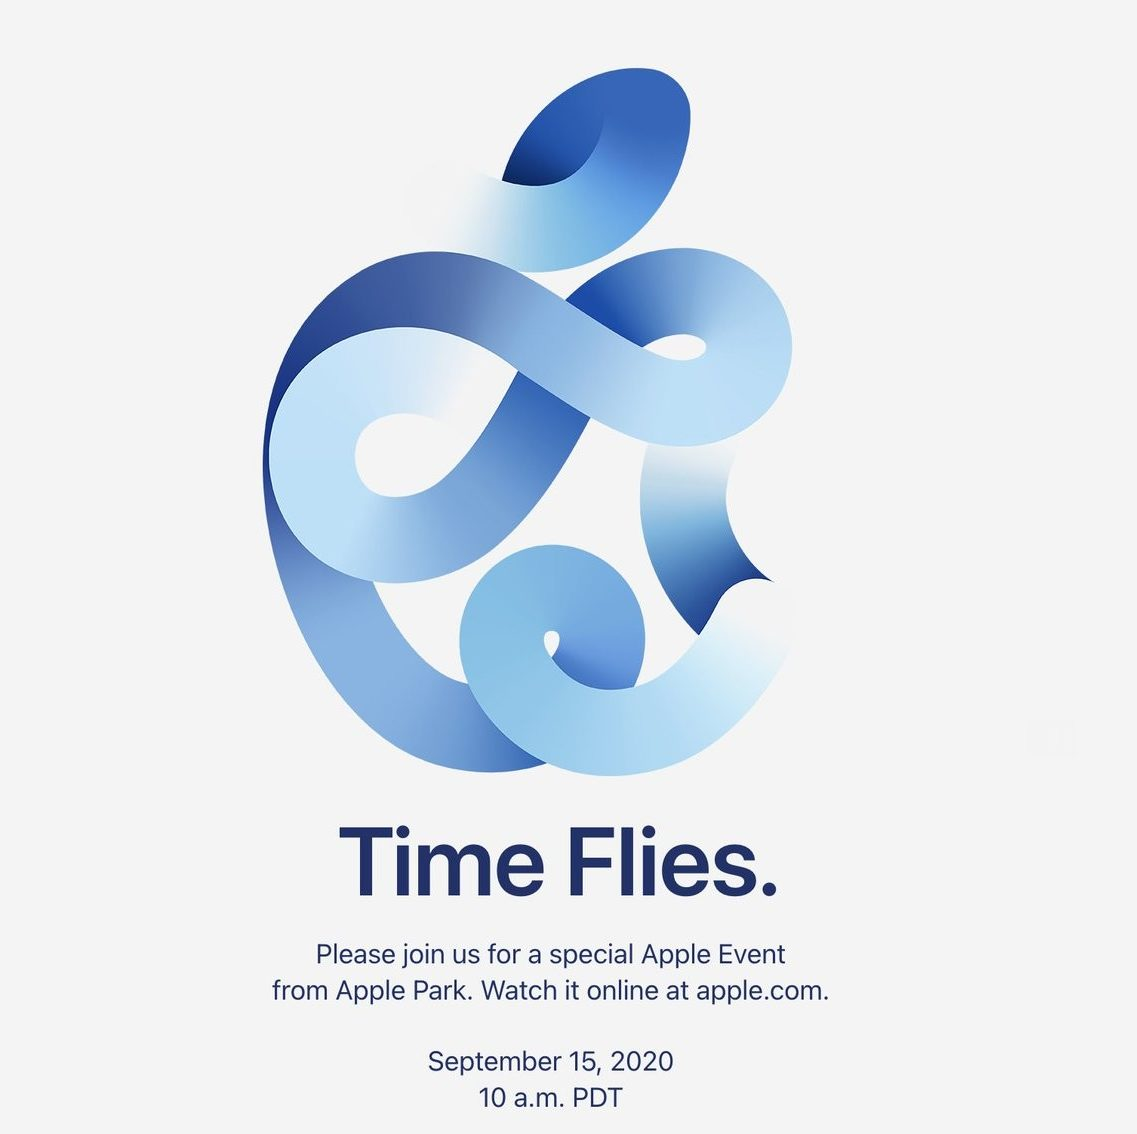 Apple-Event-Time-Flies-e1599634974241